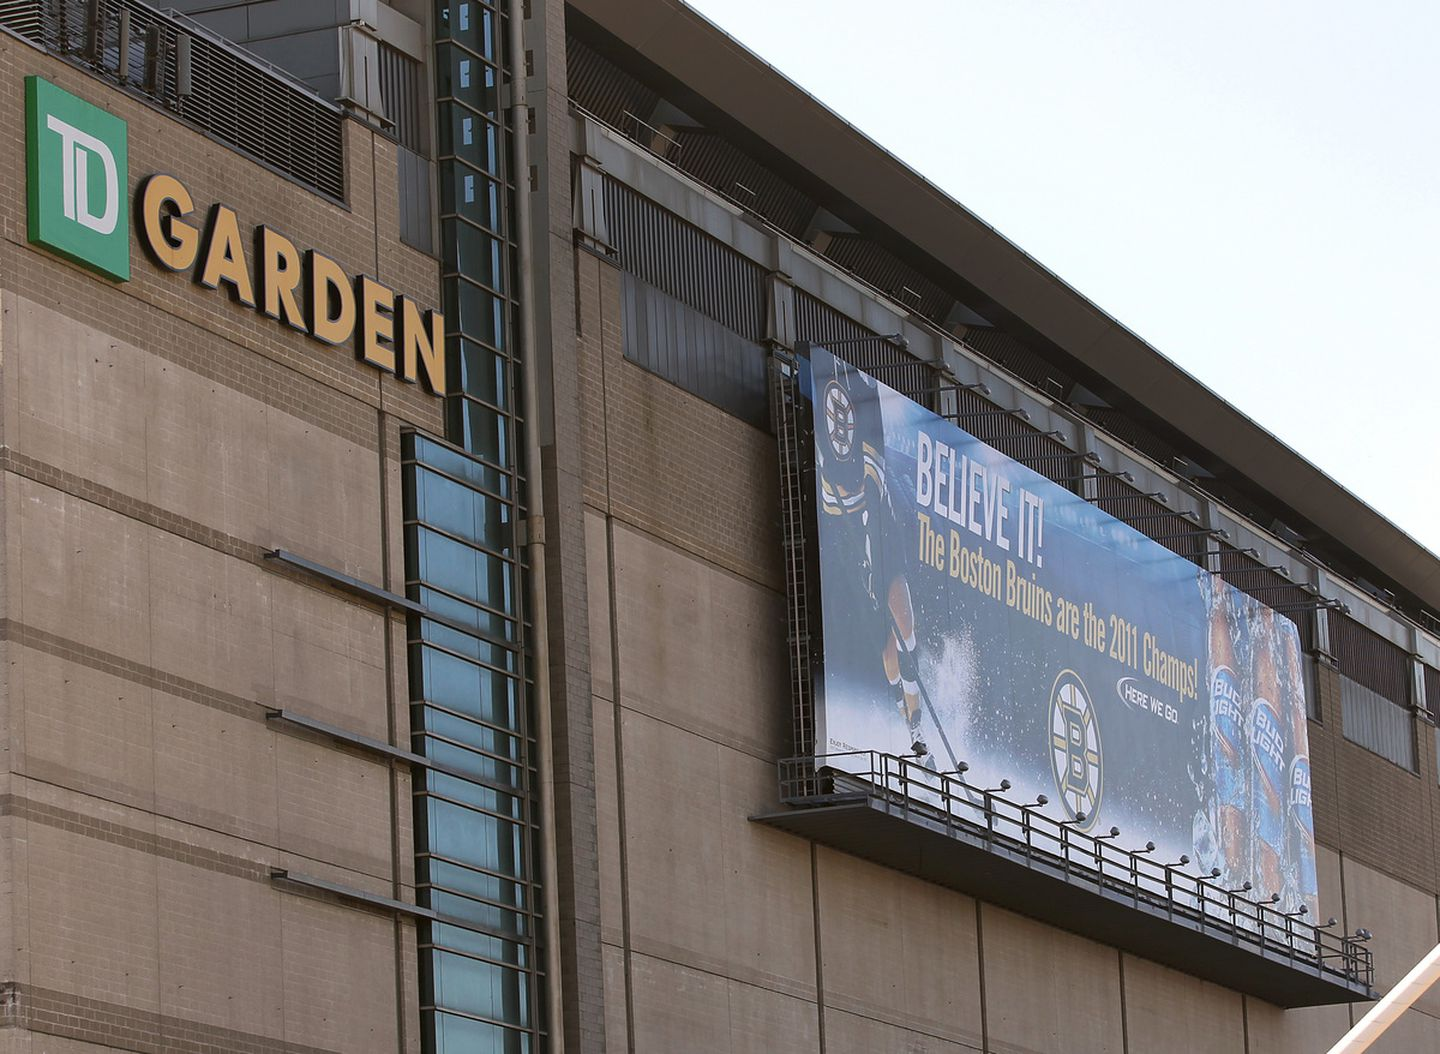 Td Garden Agrees To Shrink Beer Billboard The Boston Globe